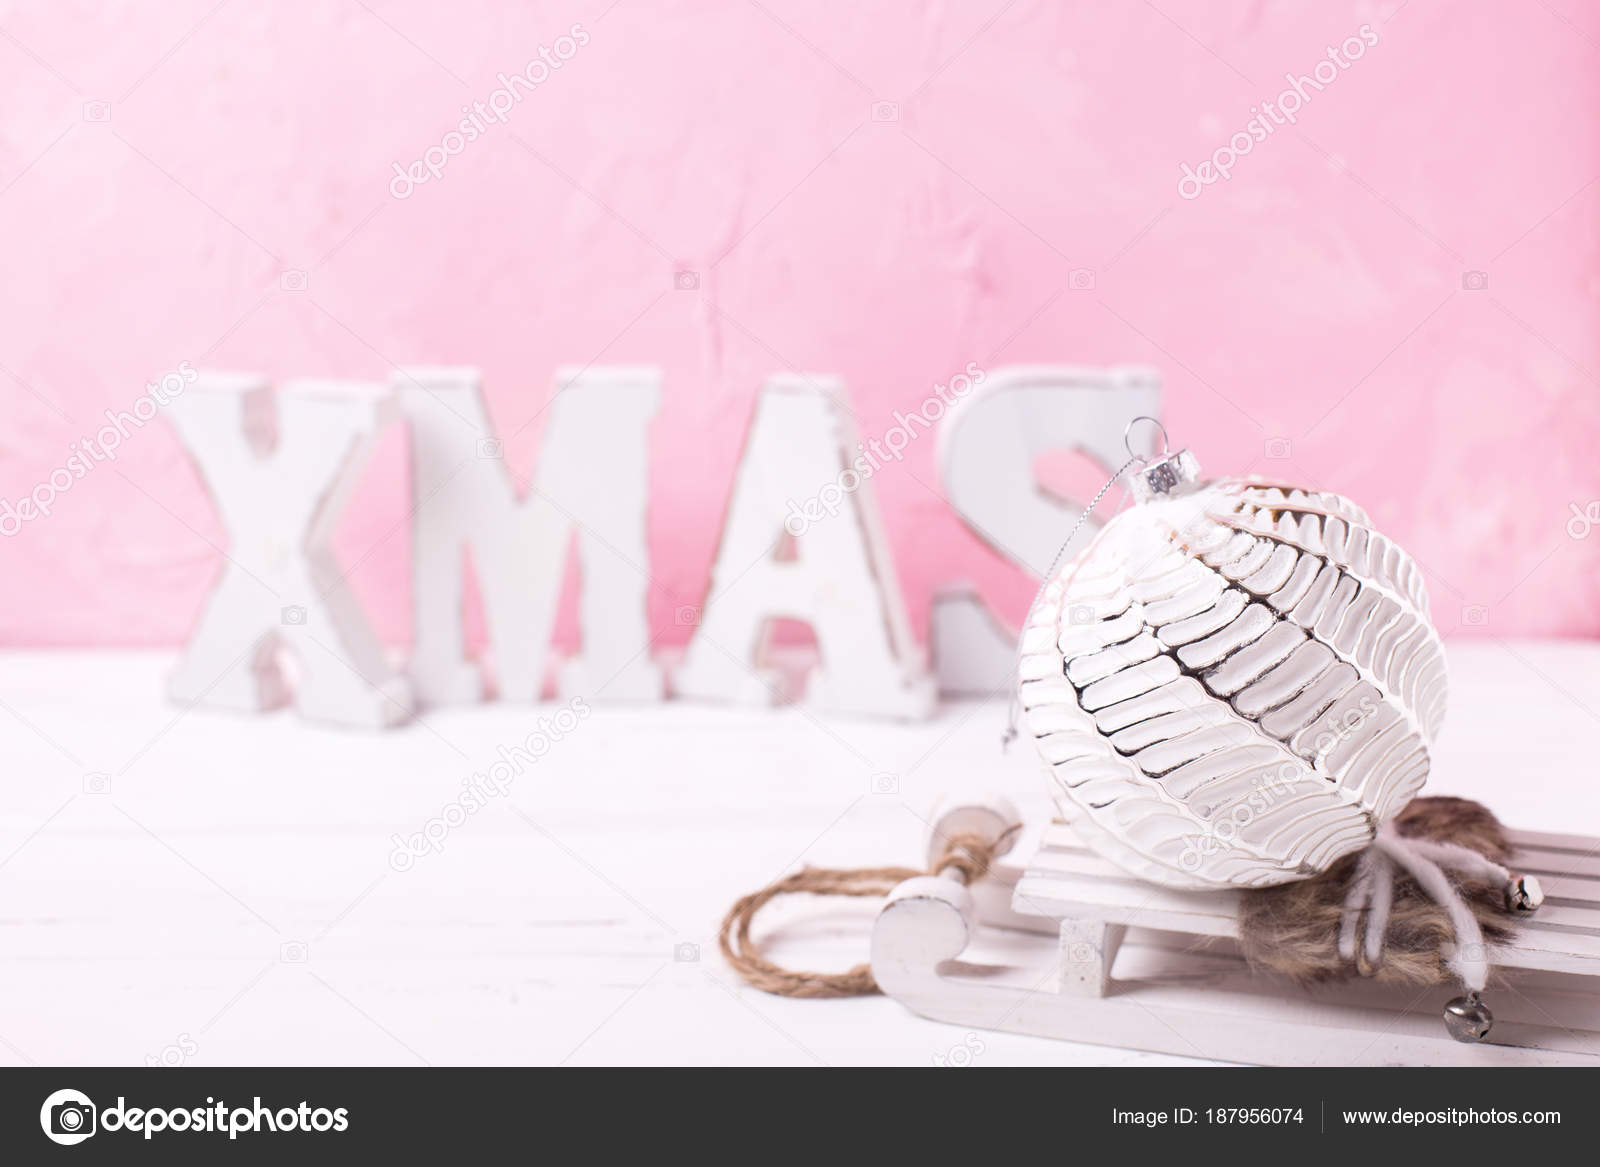 white ball and word xmas made from wooden letters on white wooden background against pink wall place for text photo by daffodil